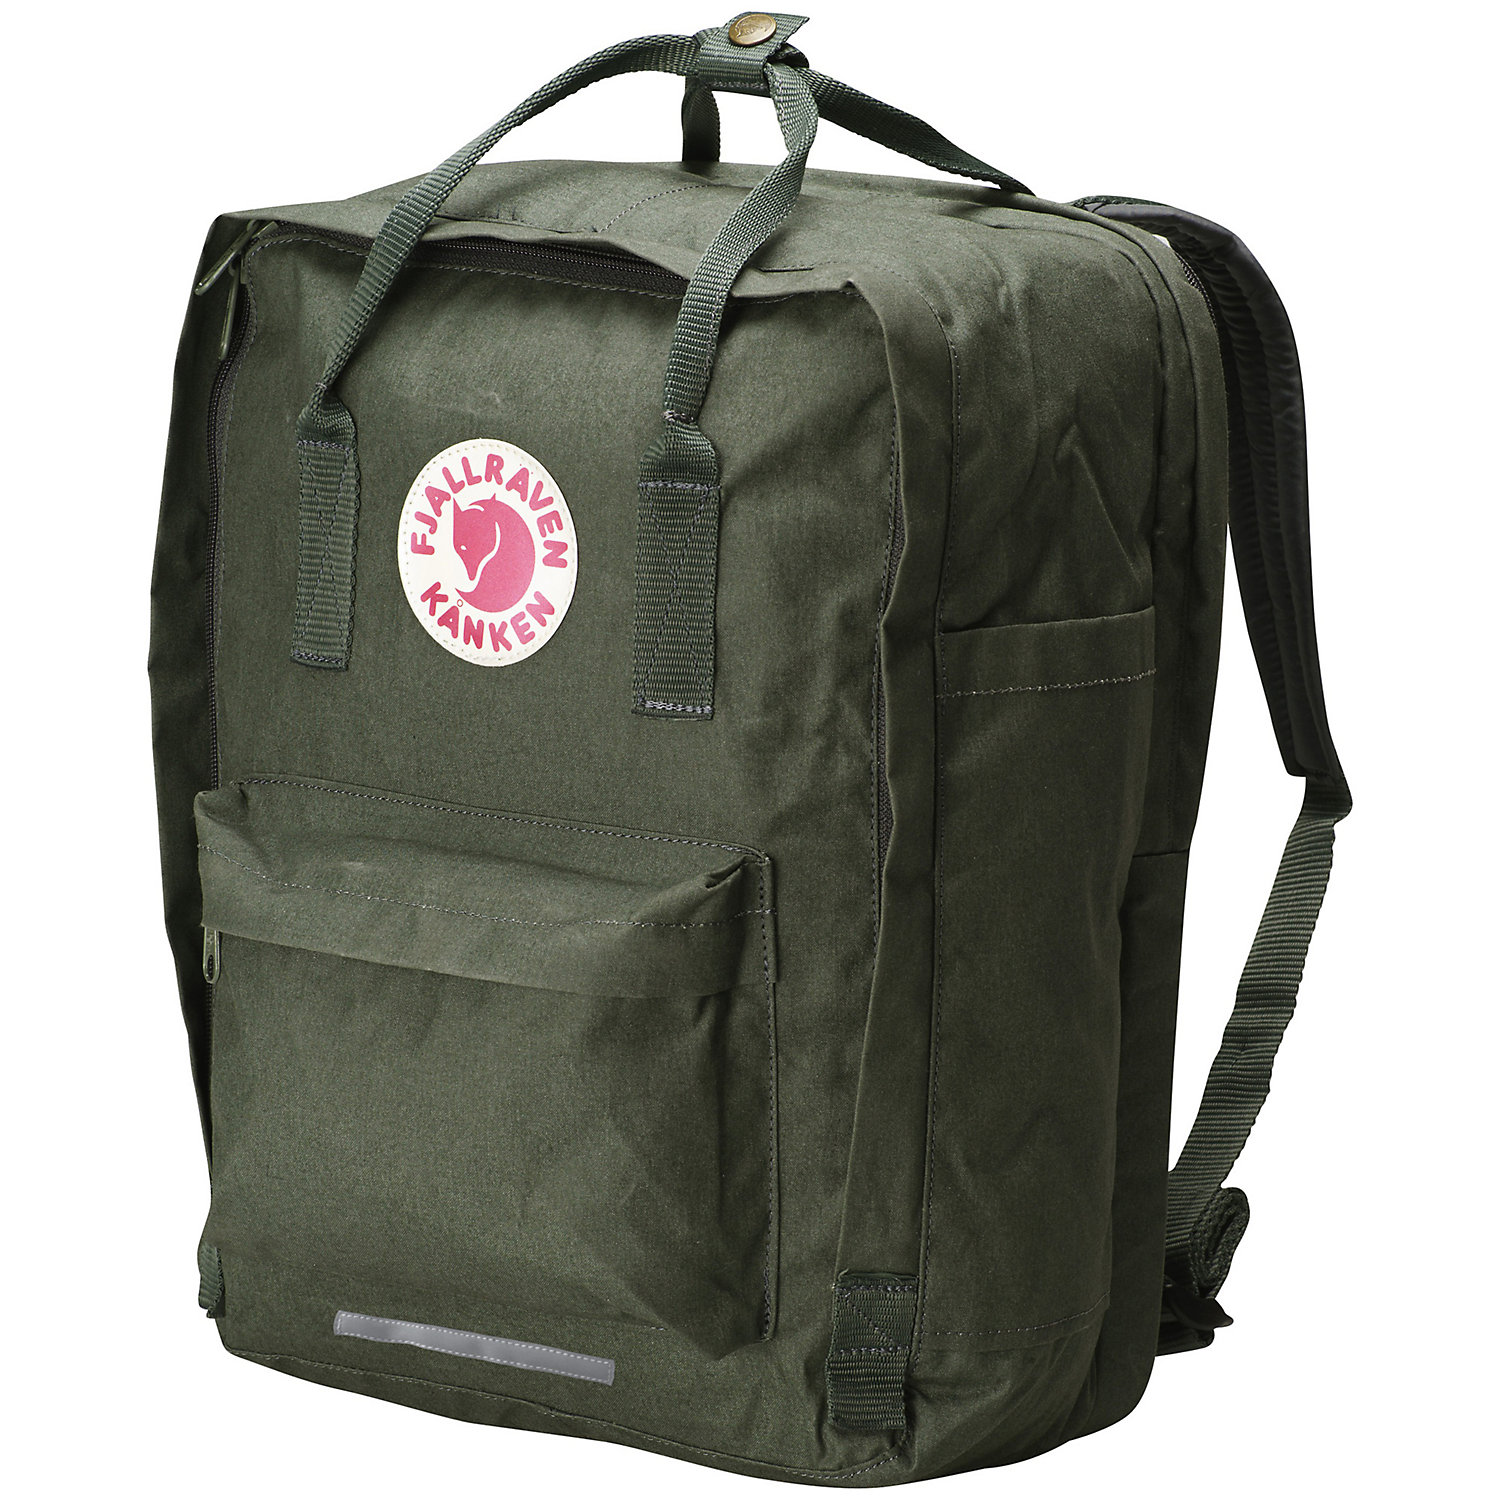 eab8ab9dea1 Fjallraven Kanken 17 Inch Laptop Bag - Moosejaw